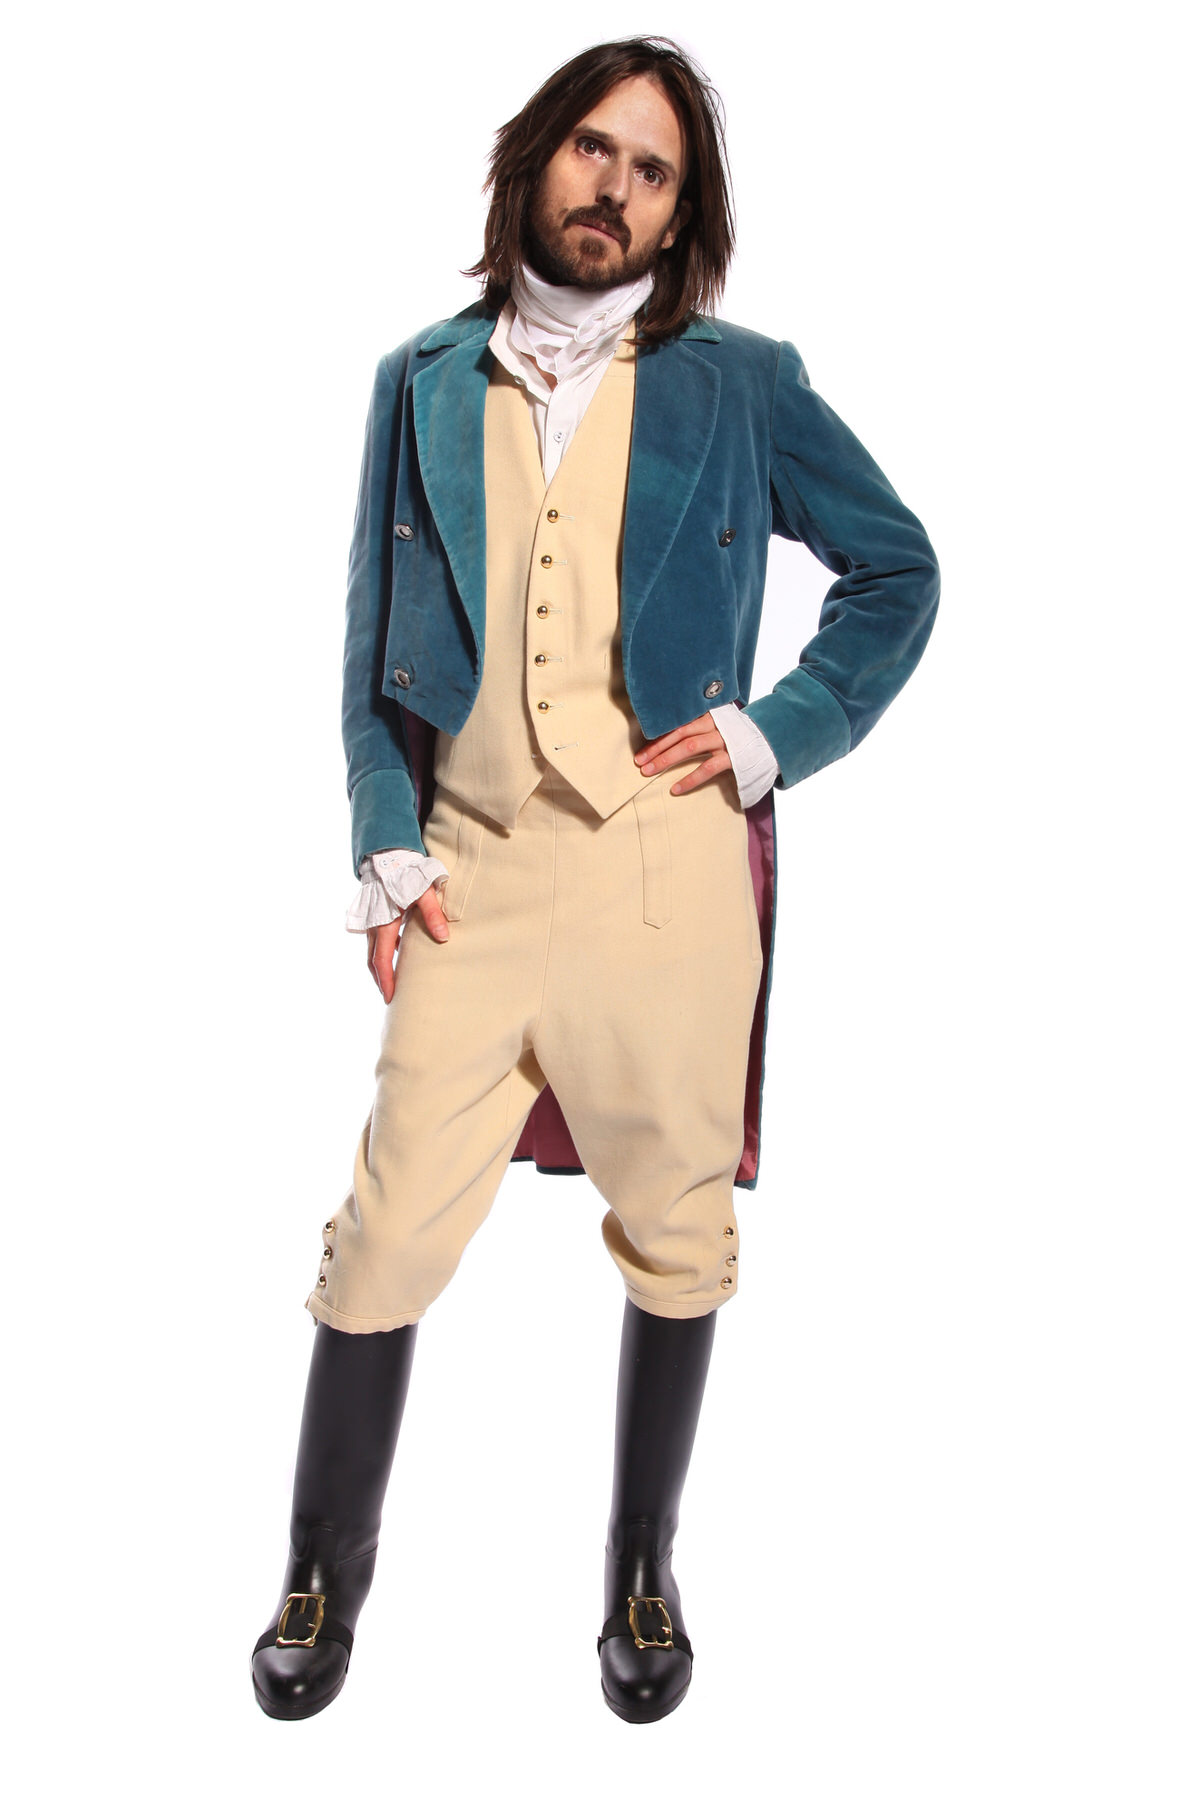 REGENCY GENT BLUE VELVET JACKET COSTUME